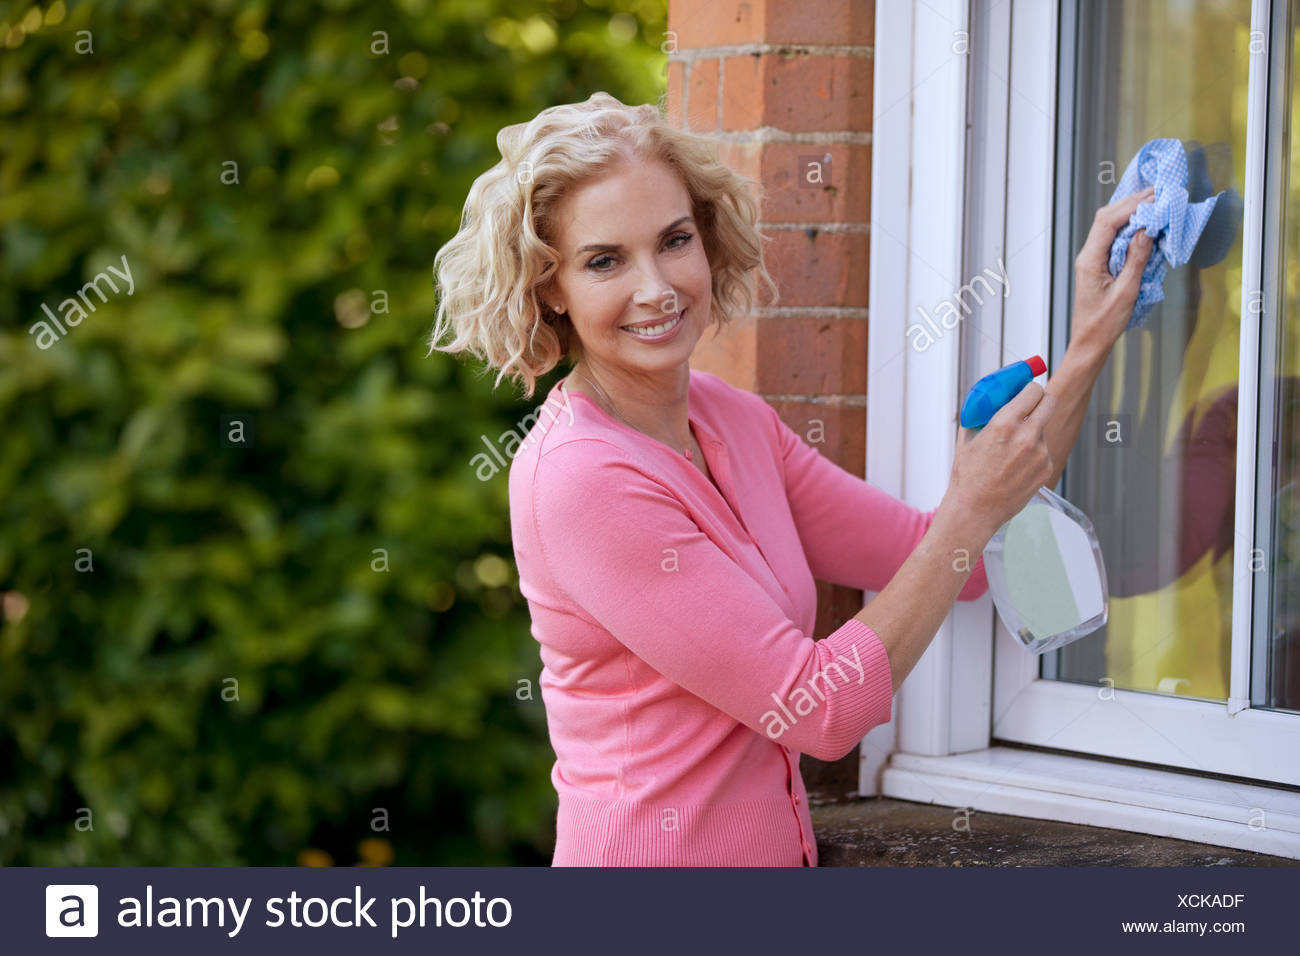 A mature woman cleaning Photo Stock